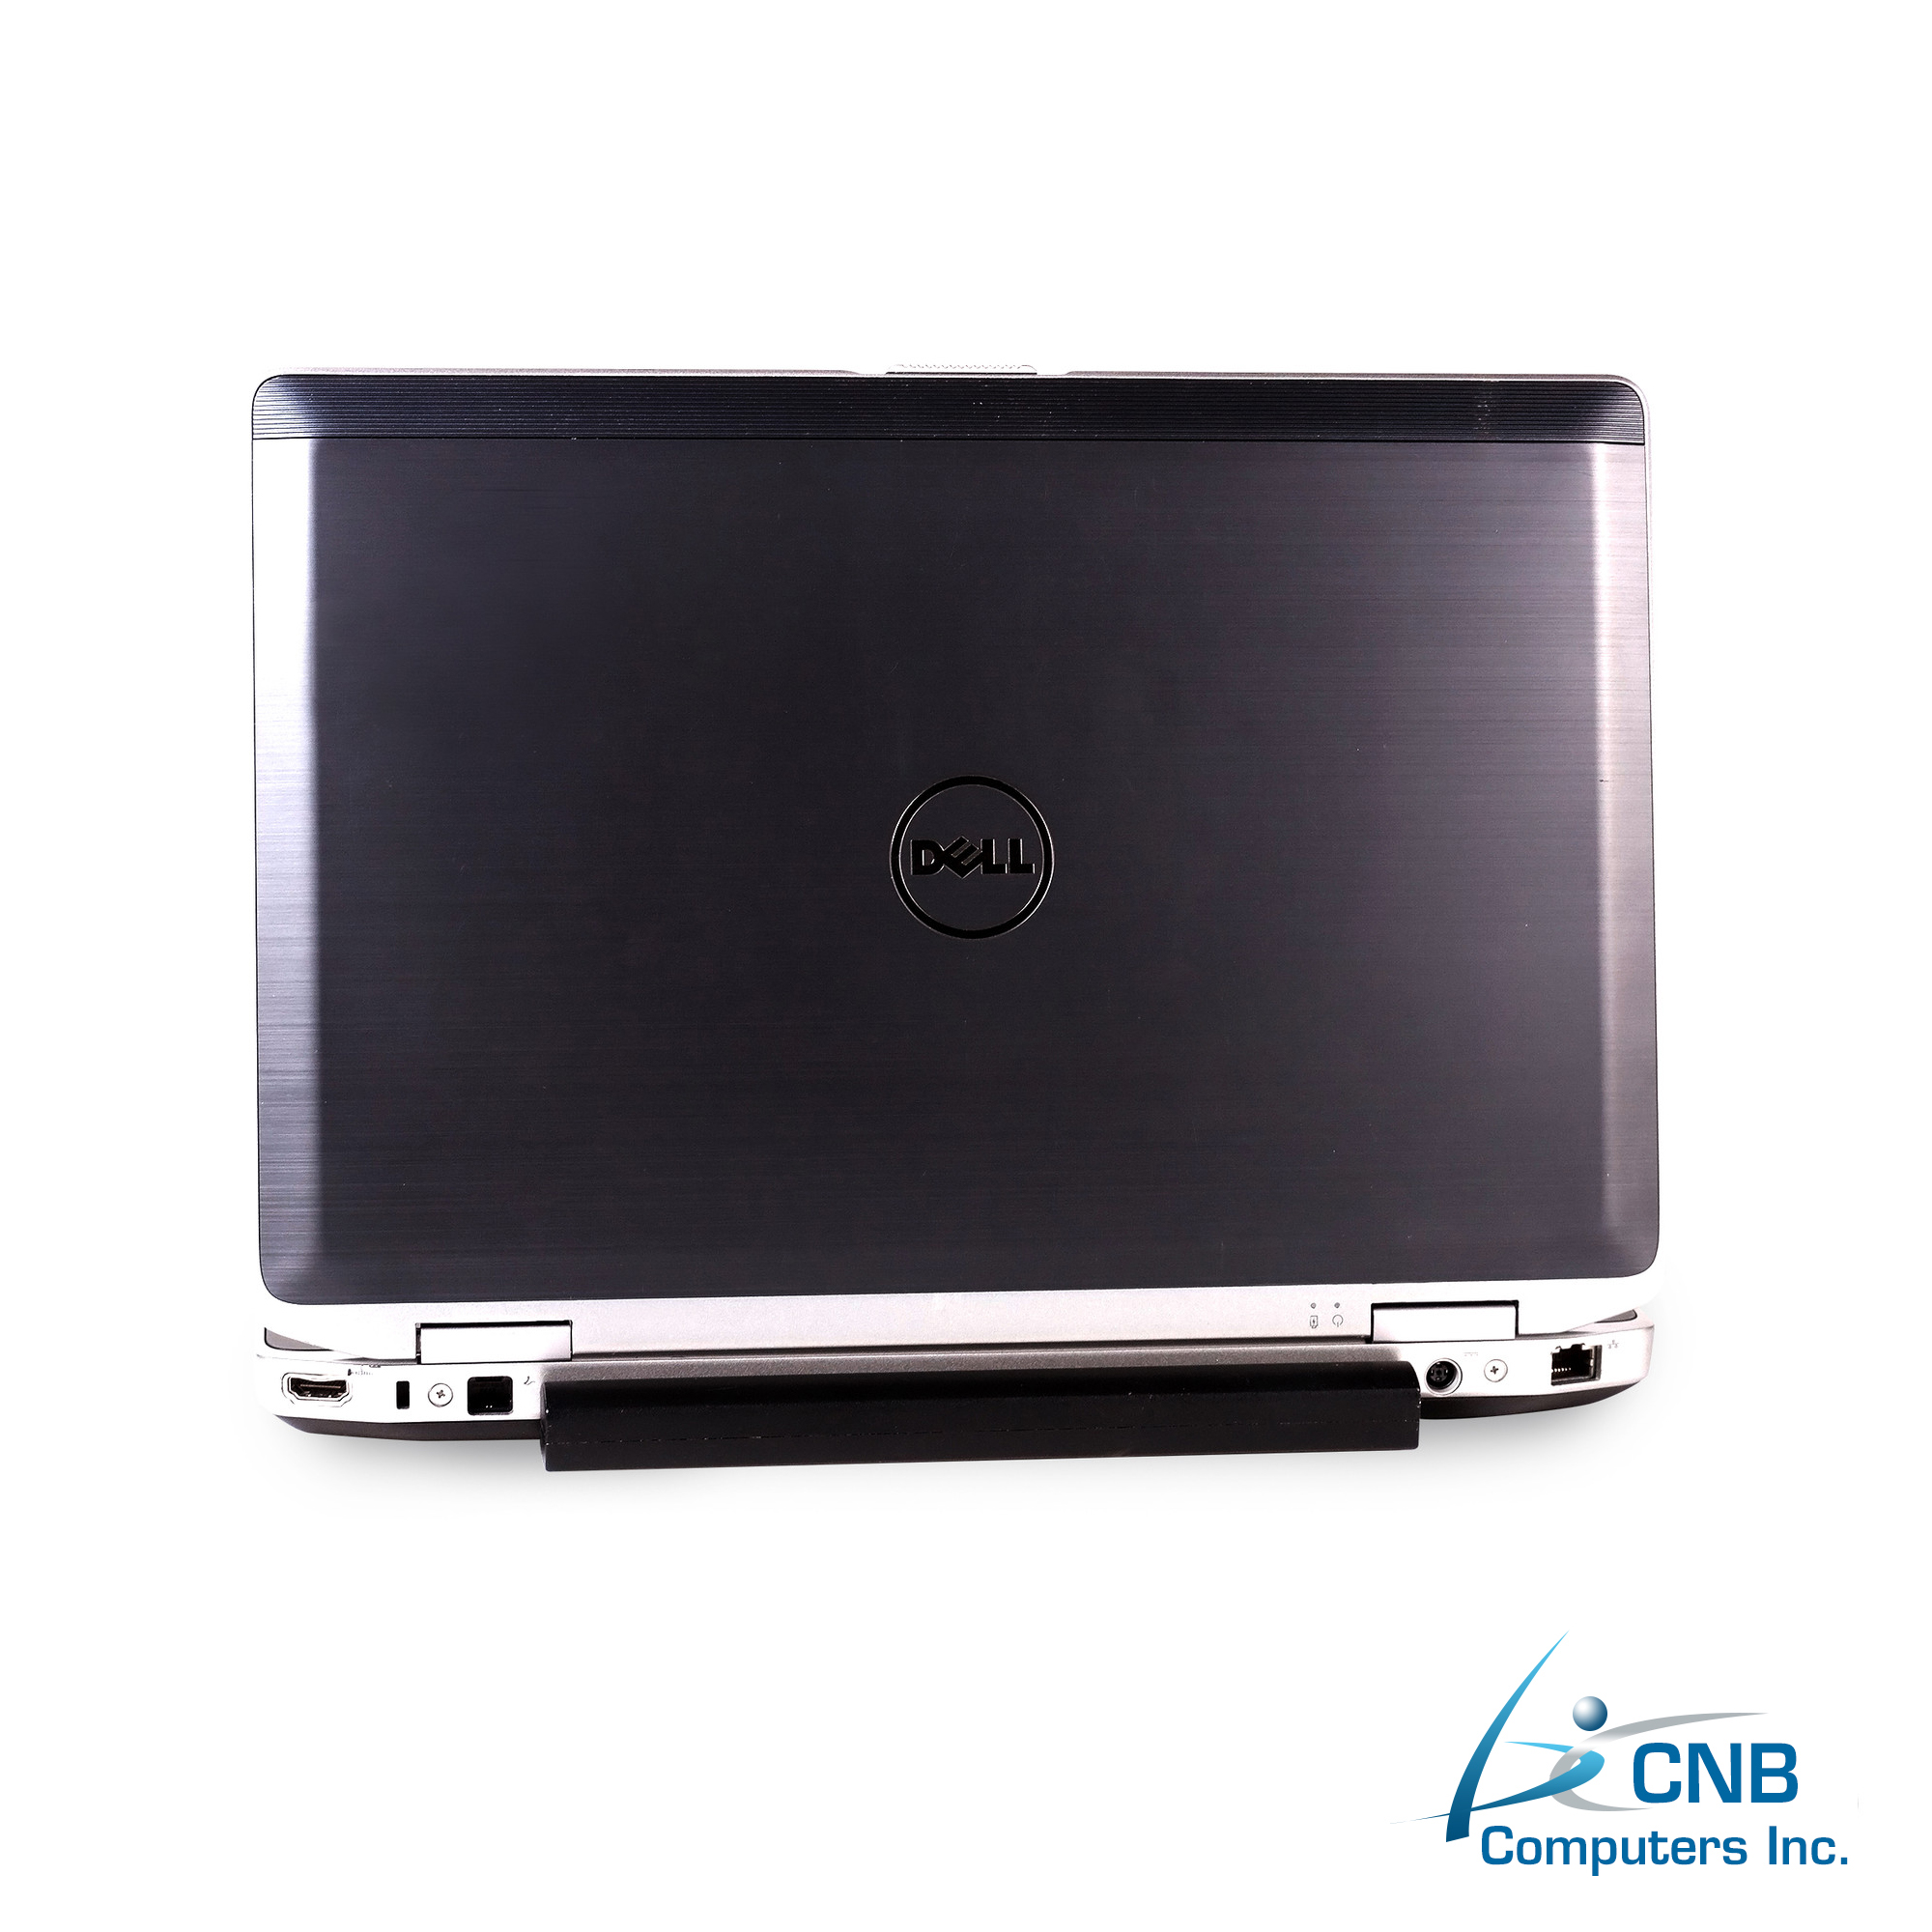 Laptop dell e6420 - Frozen in dvd